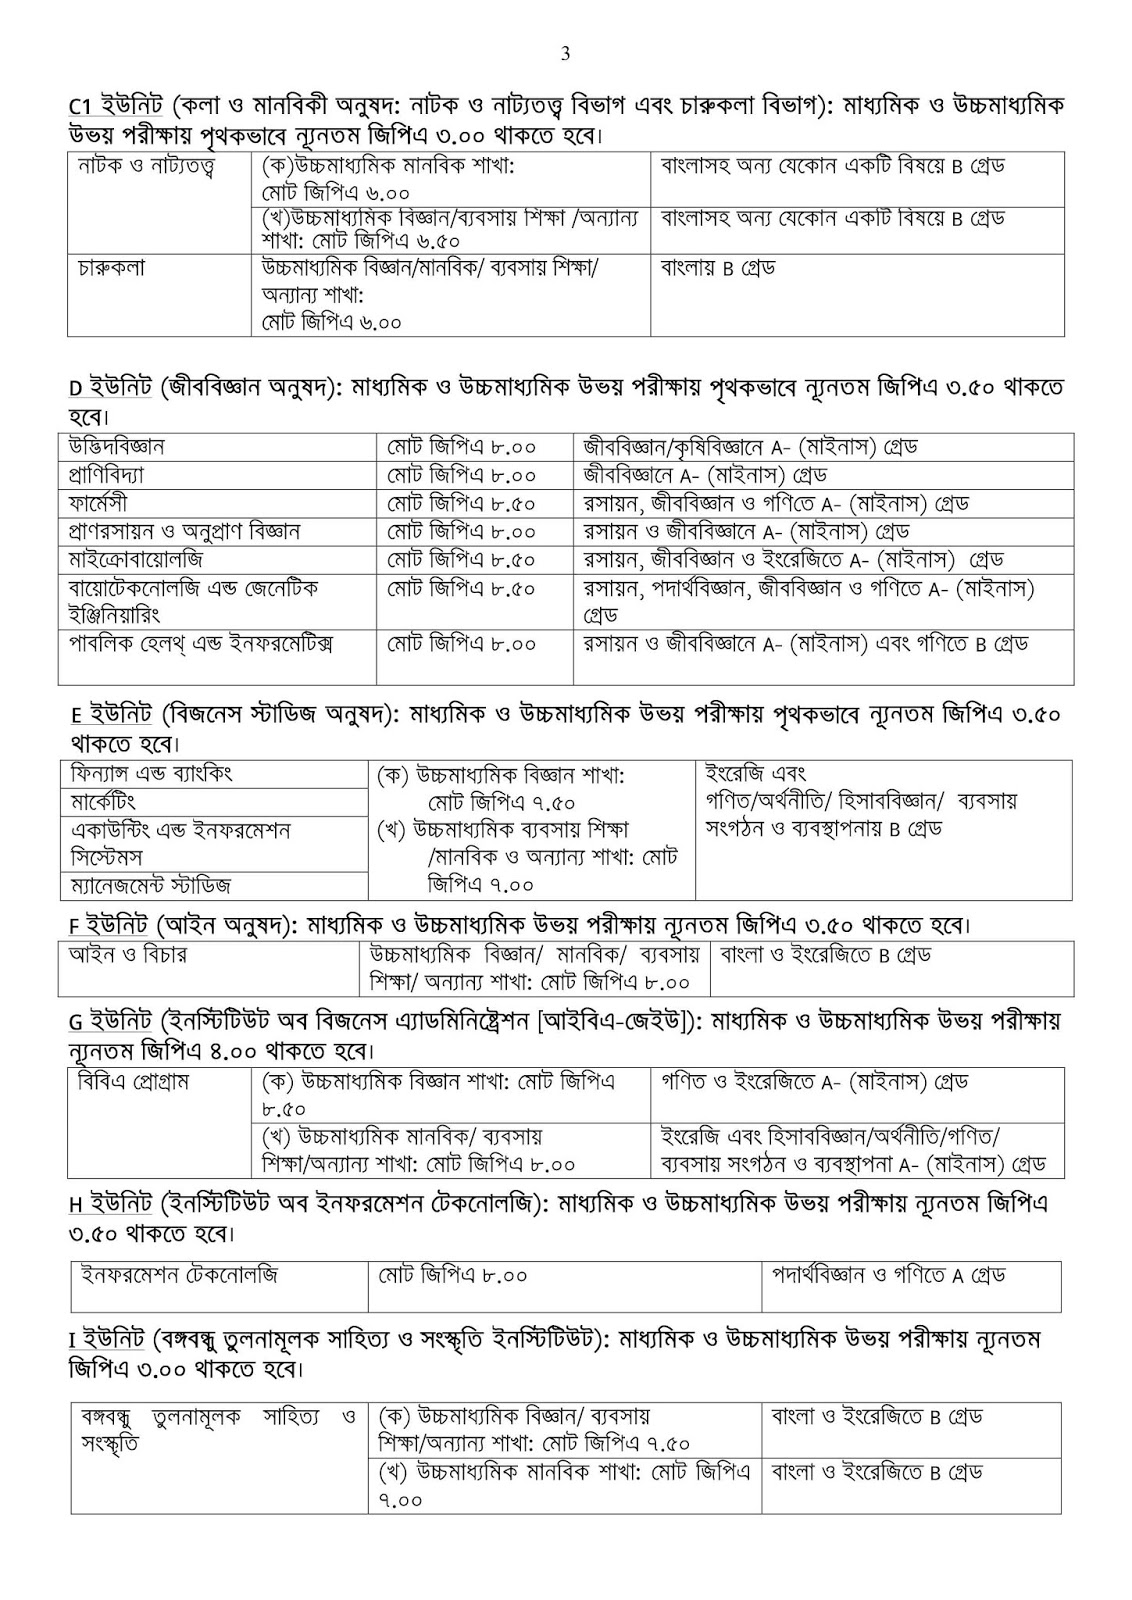 Jahangirnagar University (JU) Admission Test Circular 2018-2019